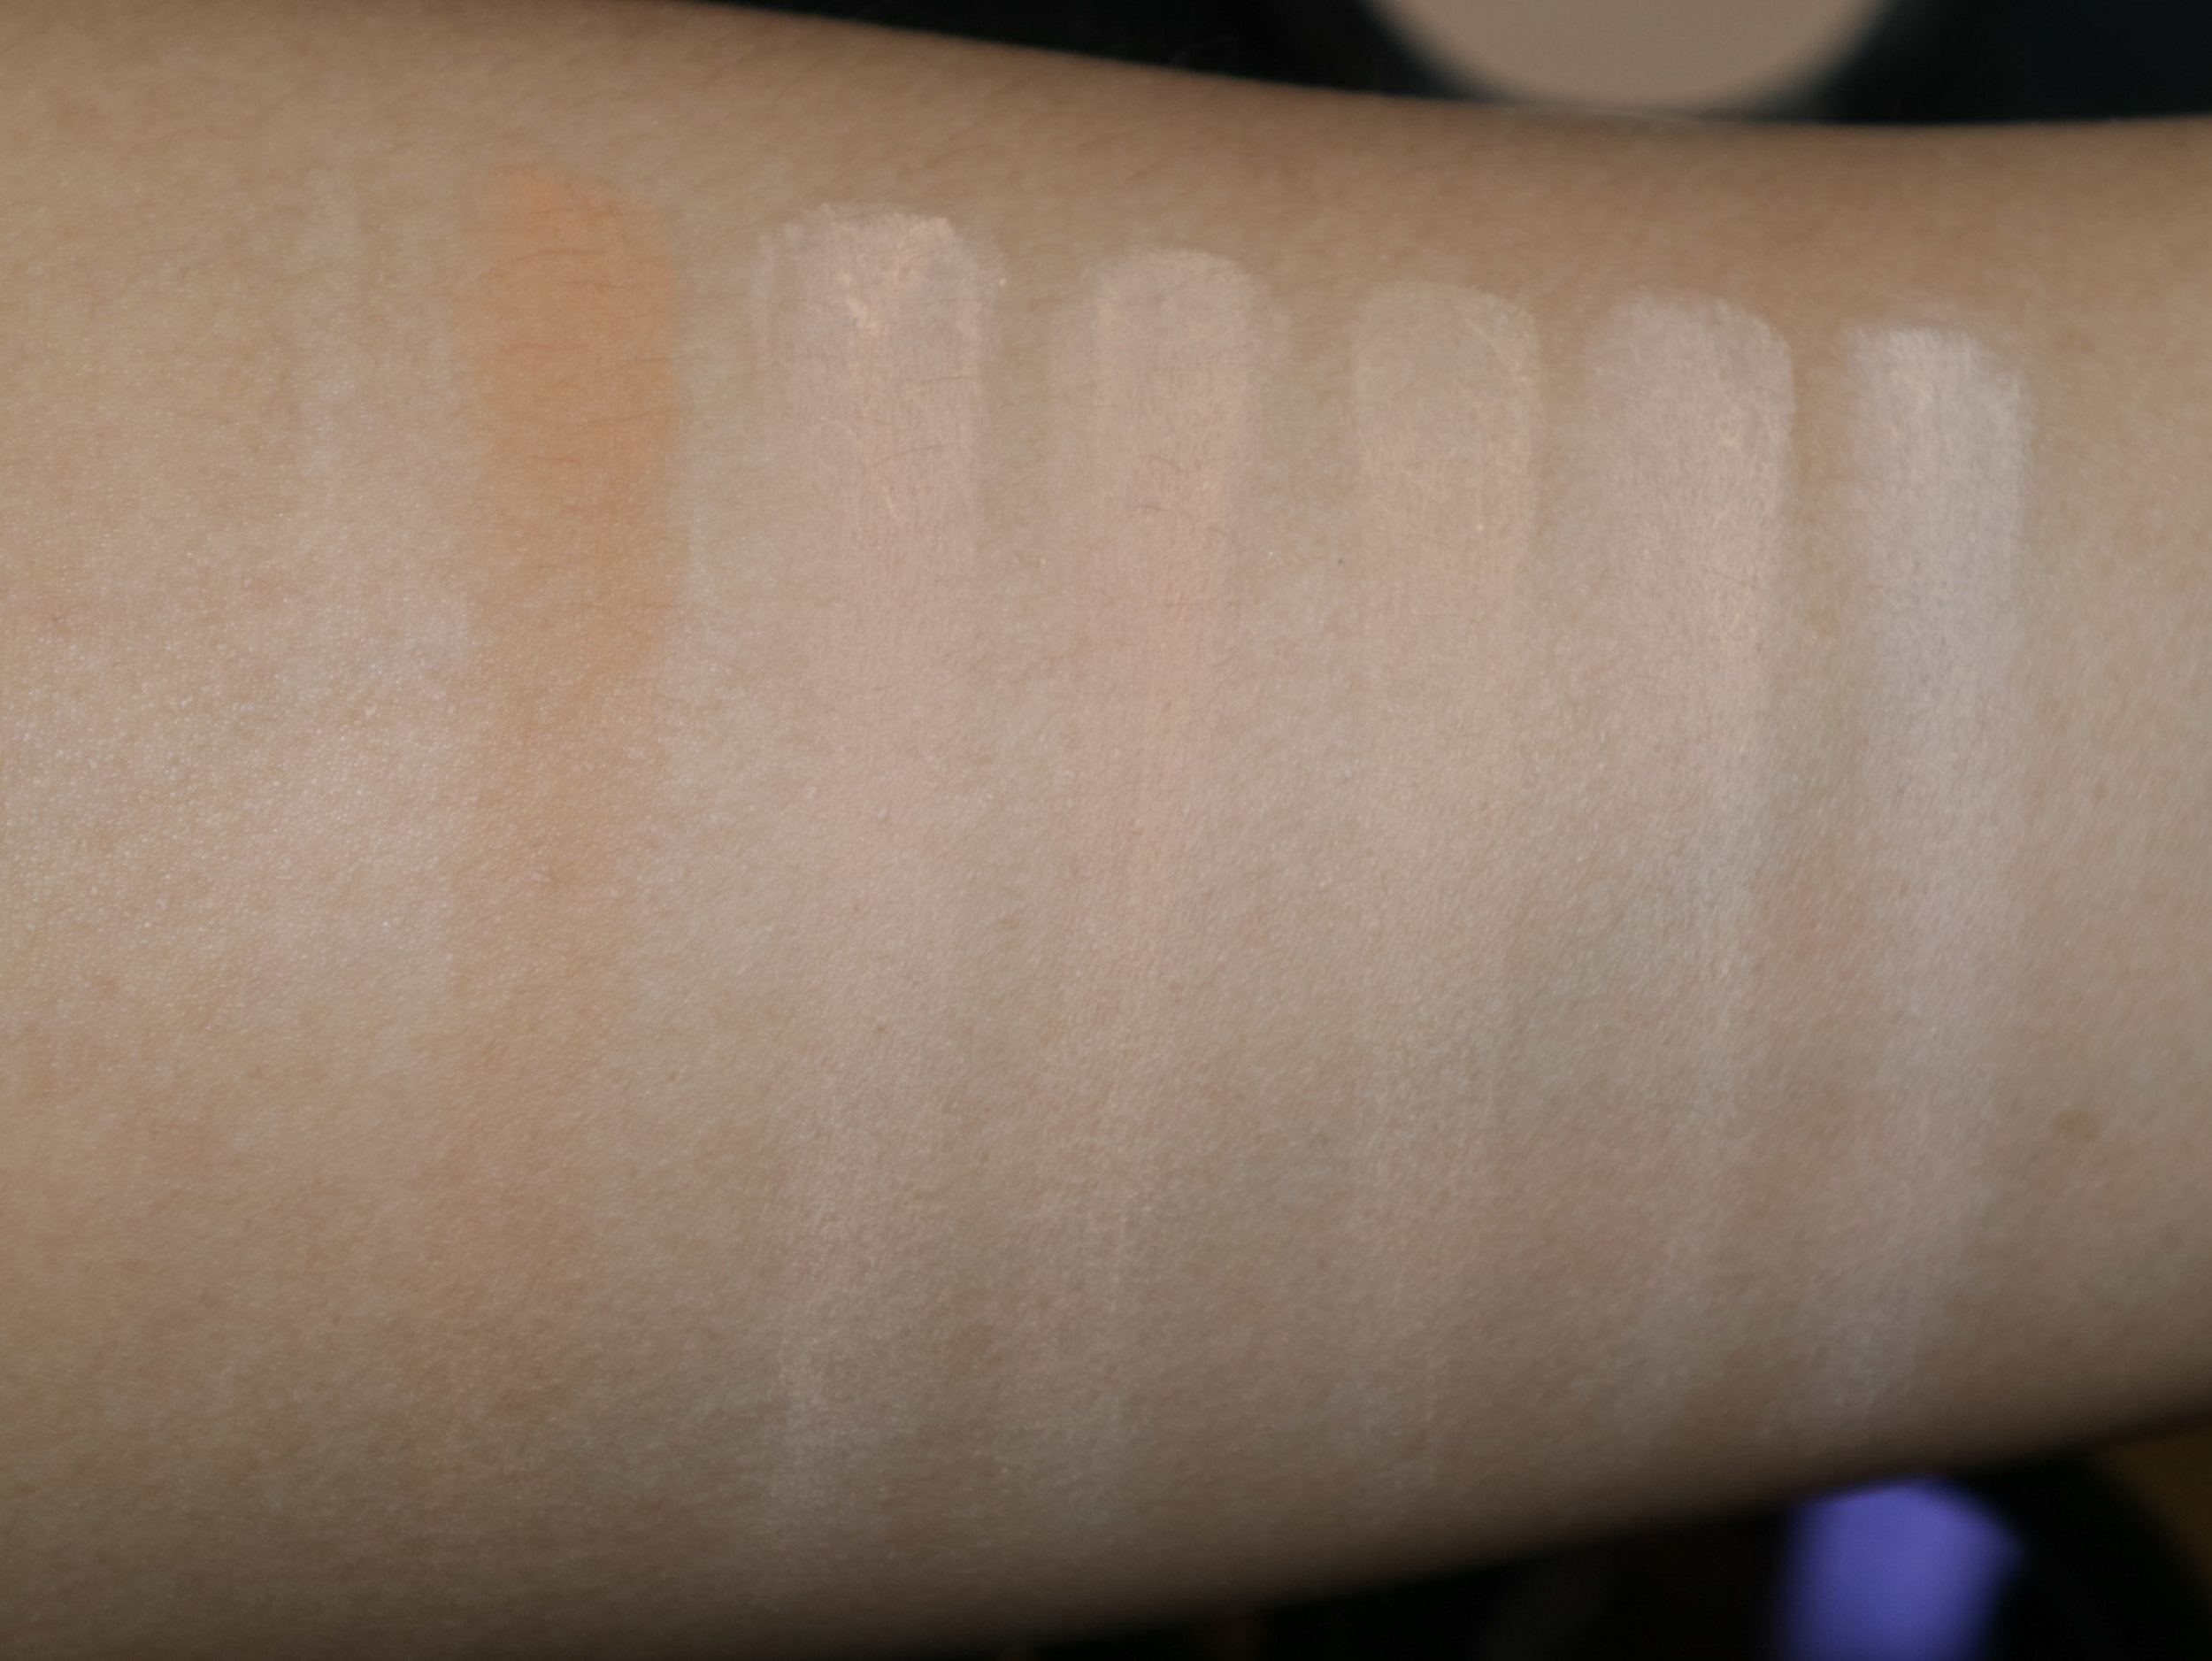 Swatches, from left: NC42, NC37, NC35, NC30, NC25, NC20